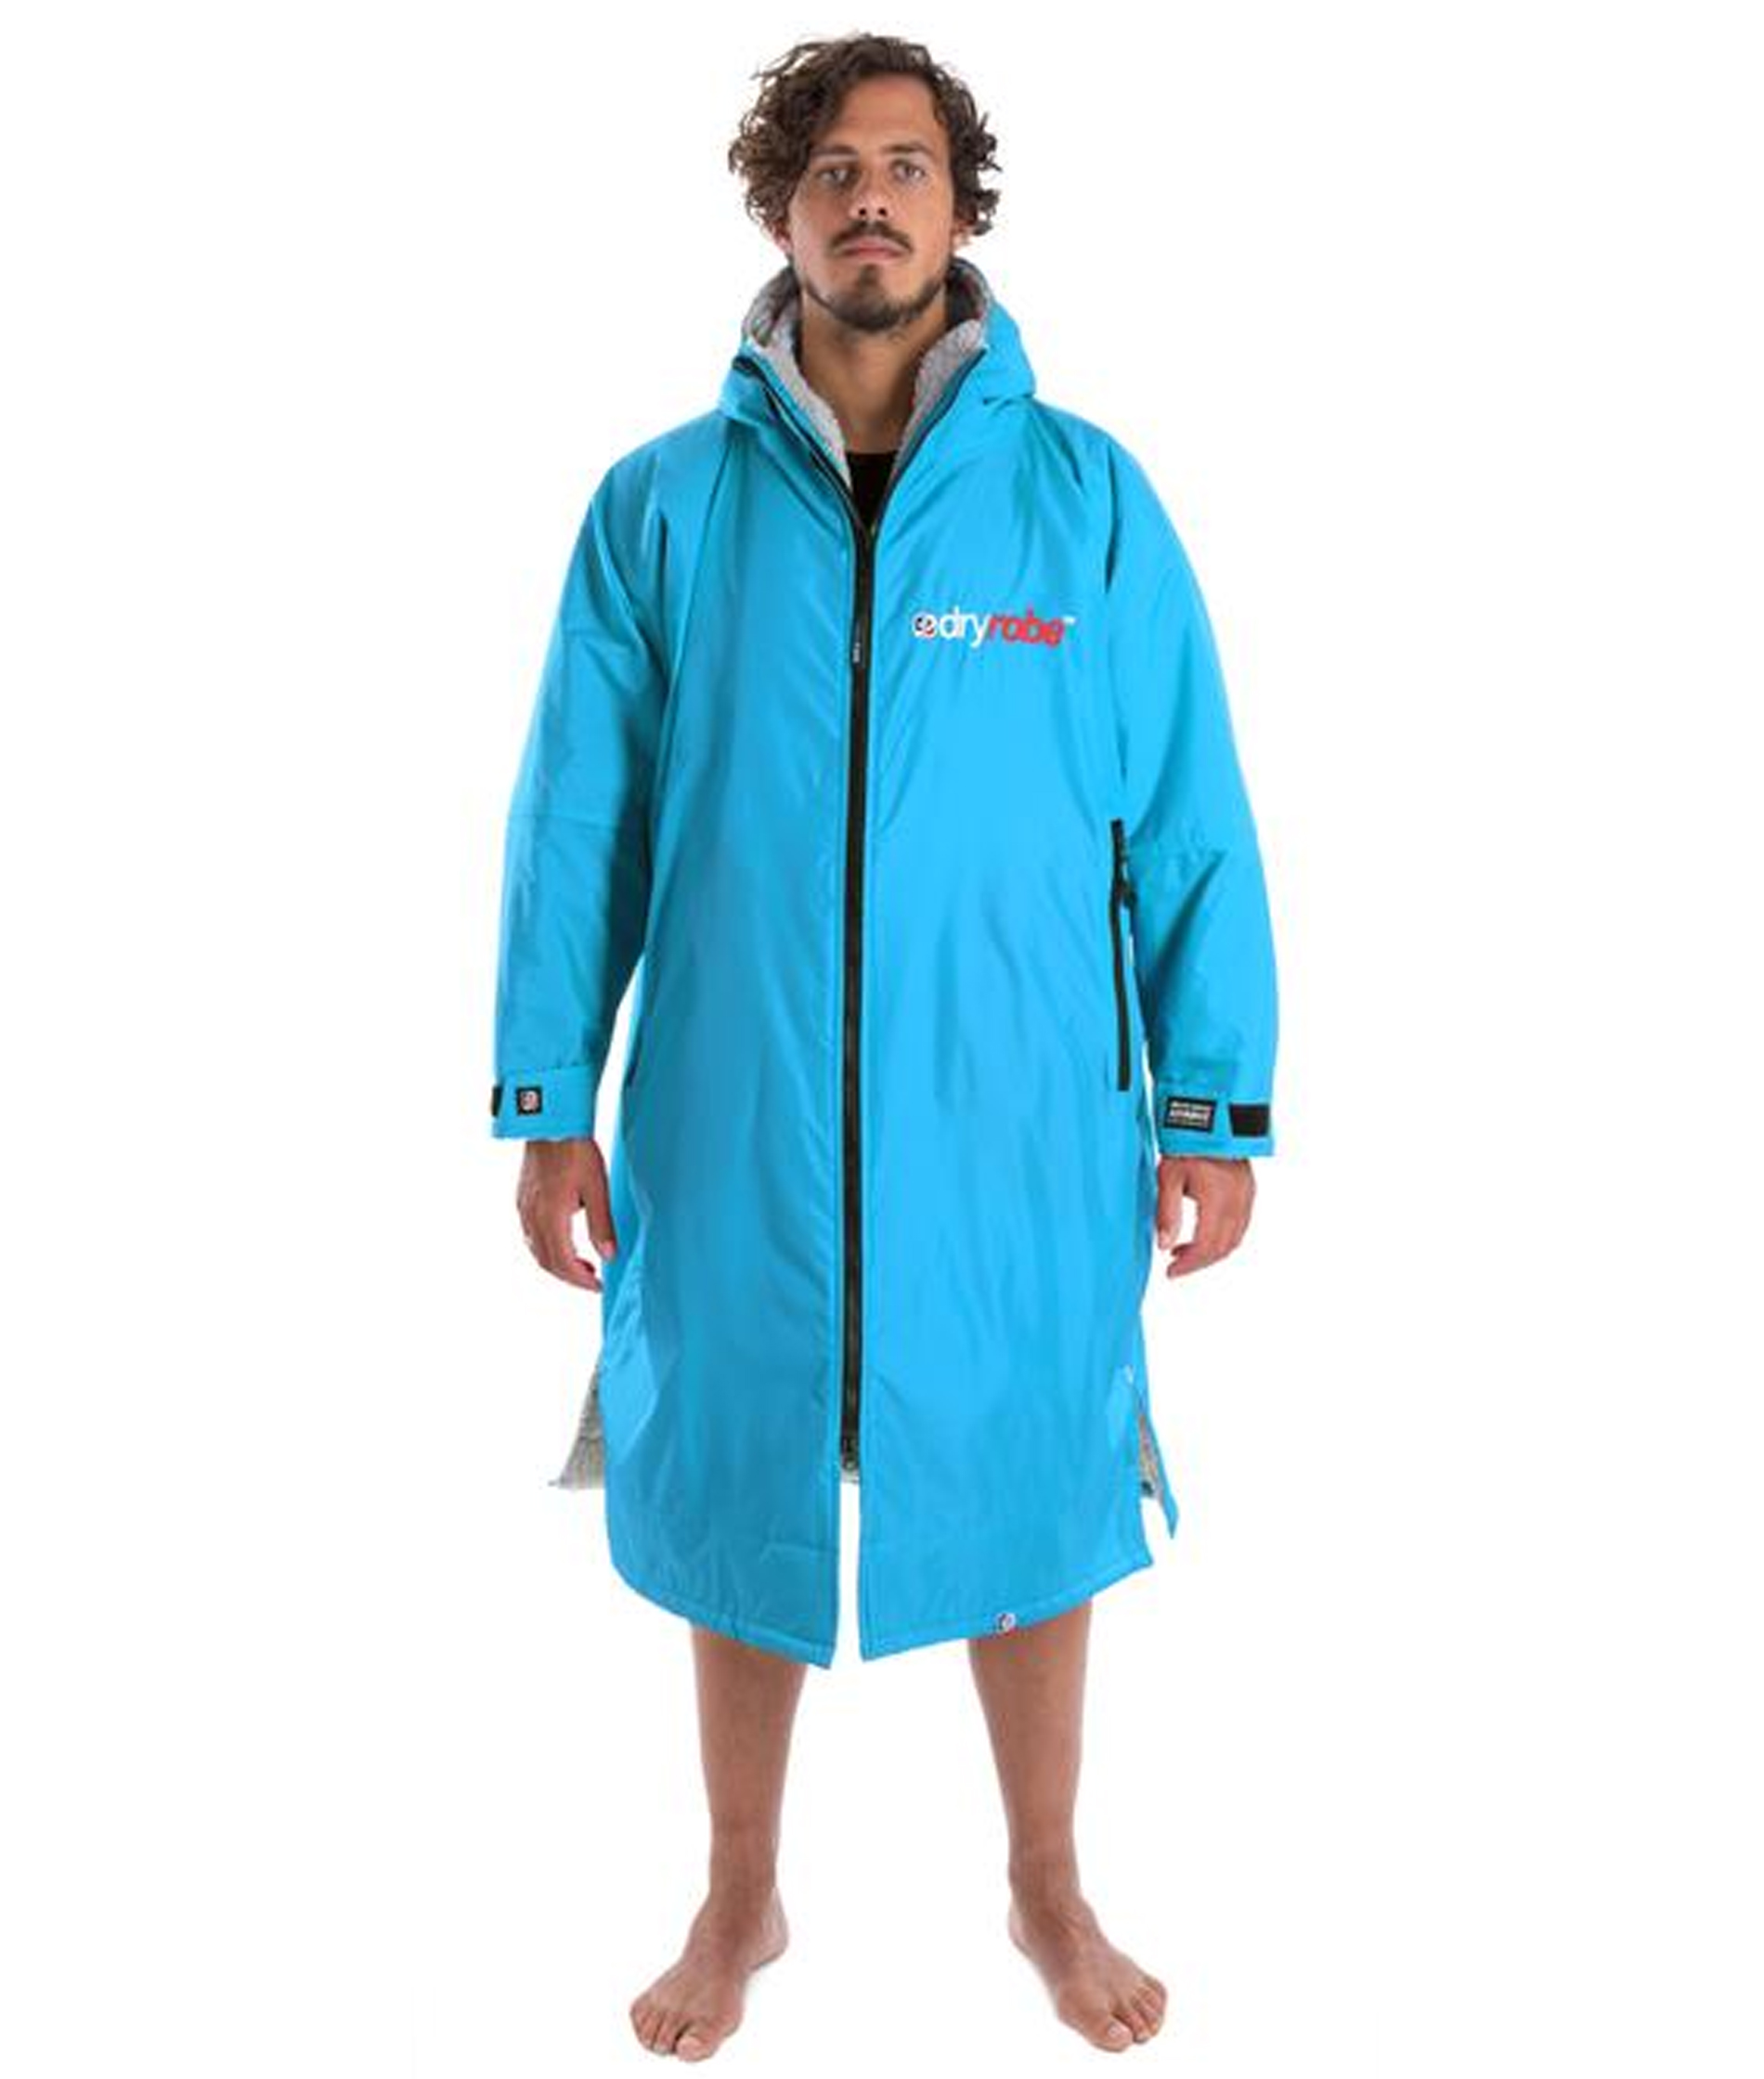 Dryrobe Advance Long Sleeve Sky Blue/Grey - Medium